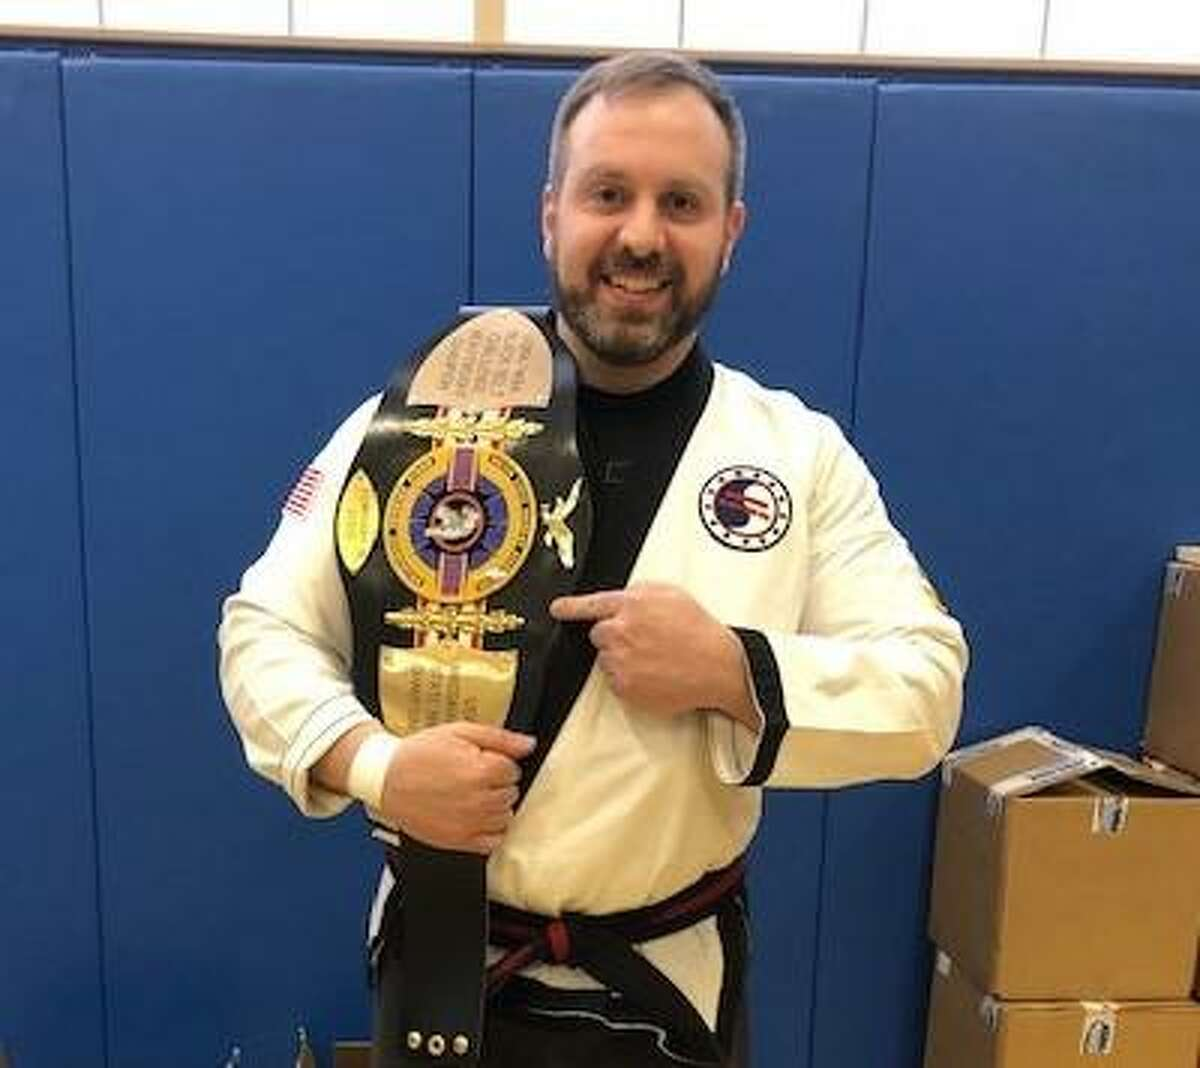 Ron Librandi, a 5th degree black belt, broke 11 of 12 patio blocks and 12 of 14 pieces of wood to win the title.